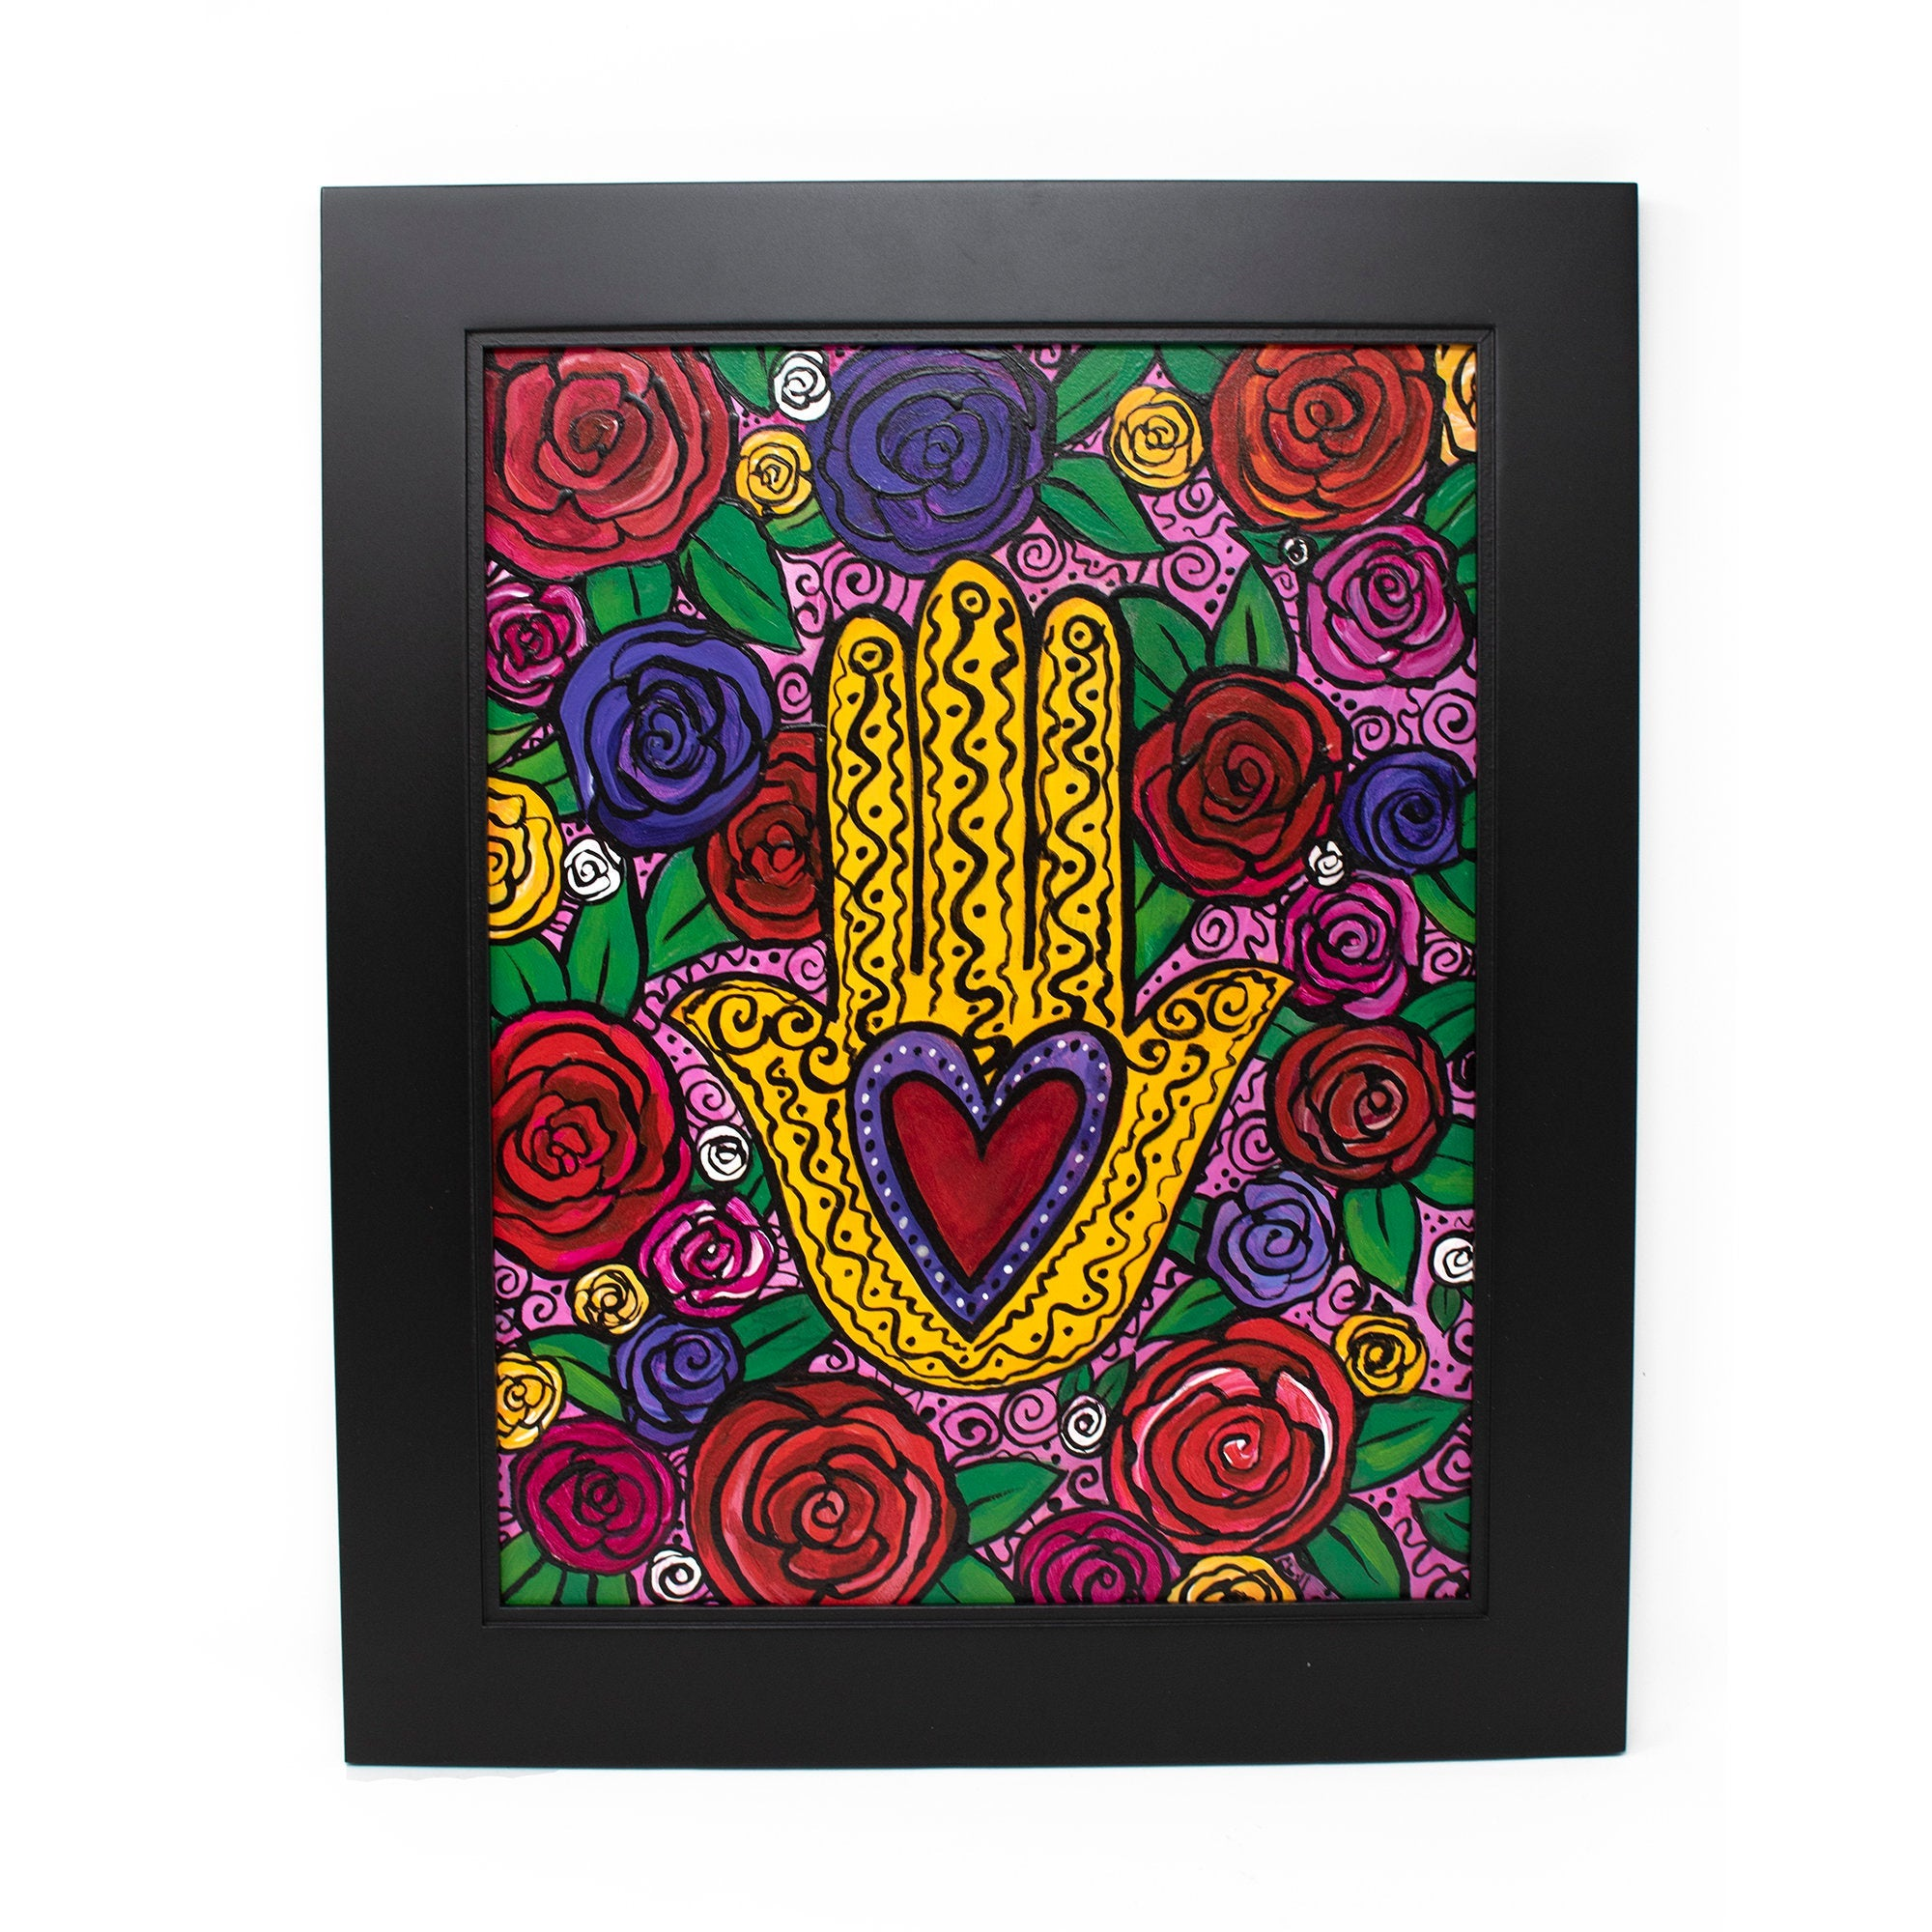 Original Hamsa Wall Art - Rose Hamsa Painting with Heart and Flowers